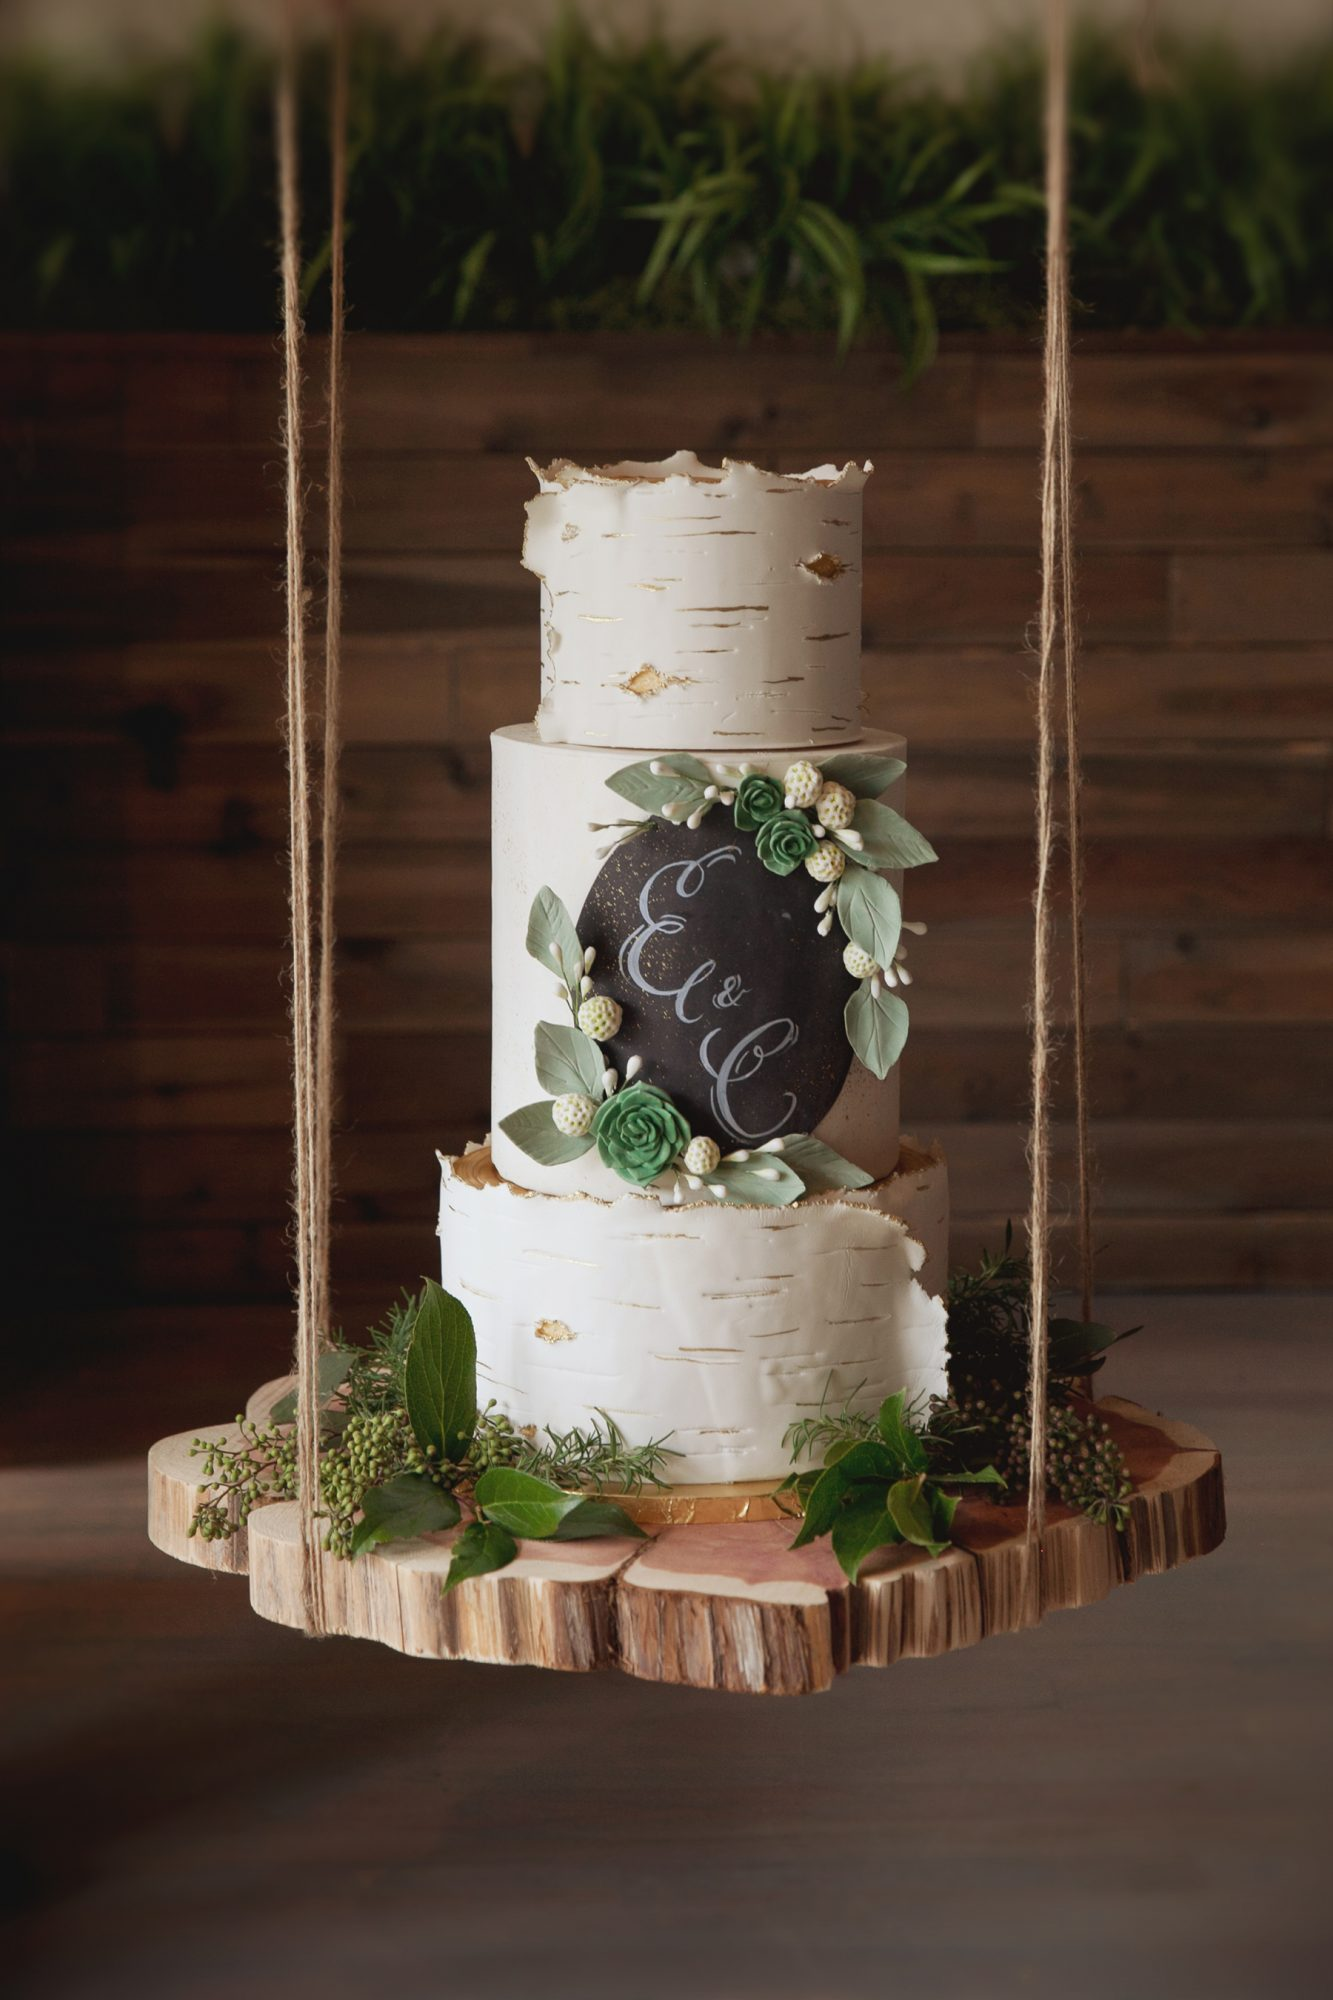 Birch Tree Wedding Cake with Chalkboard